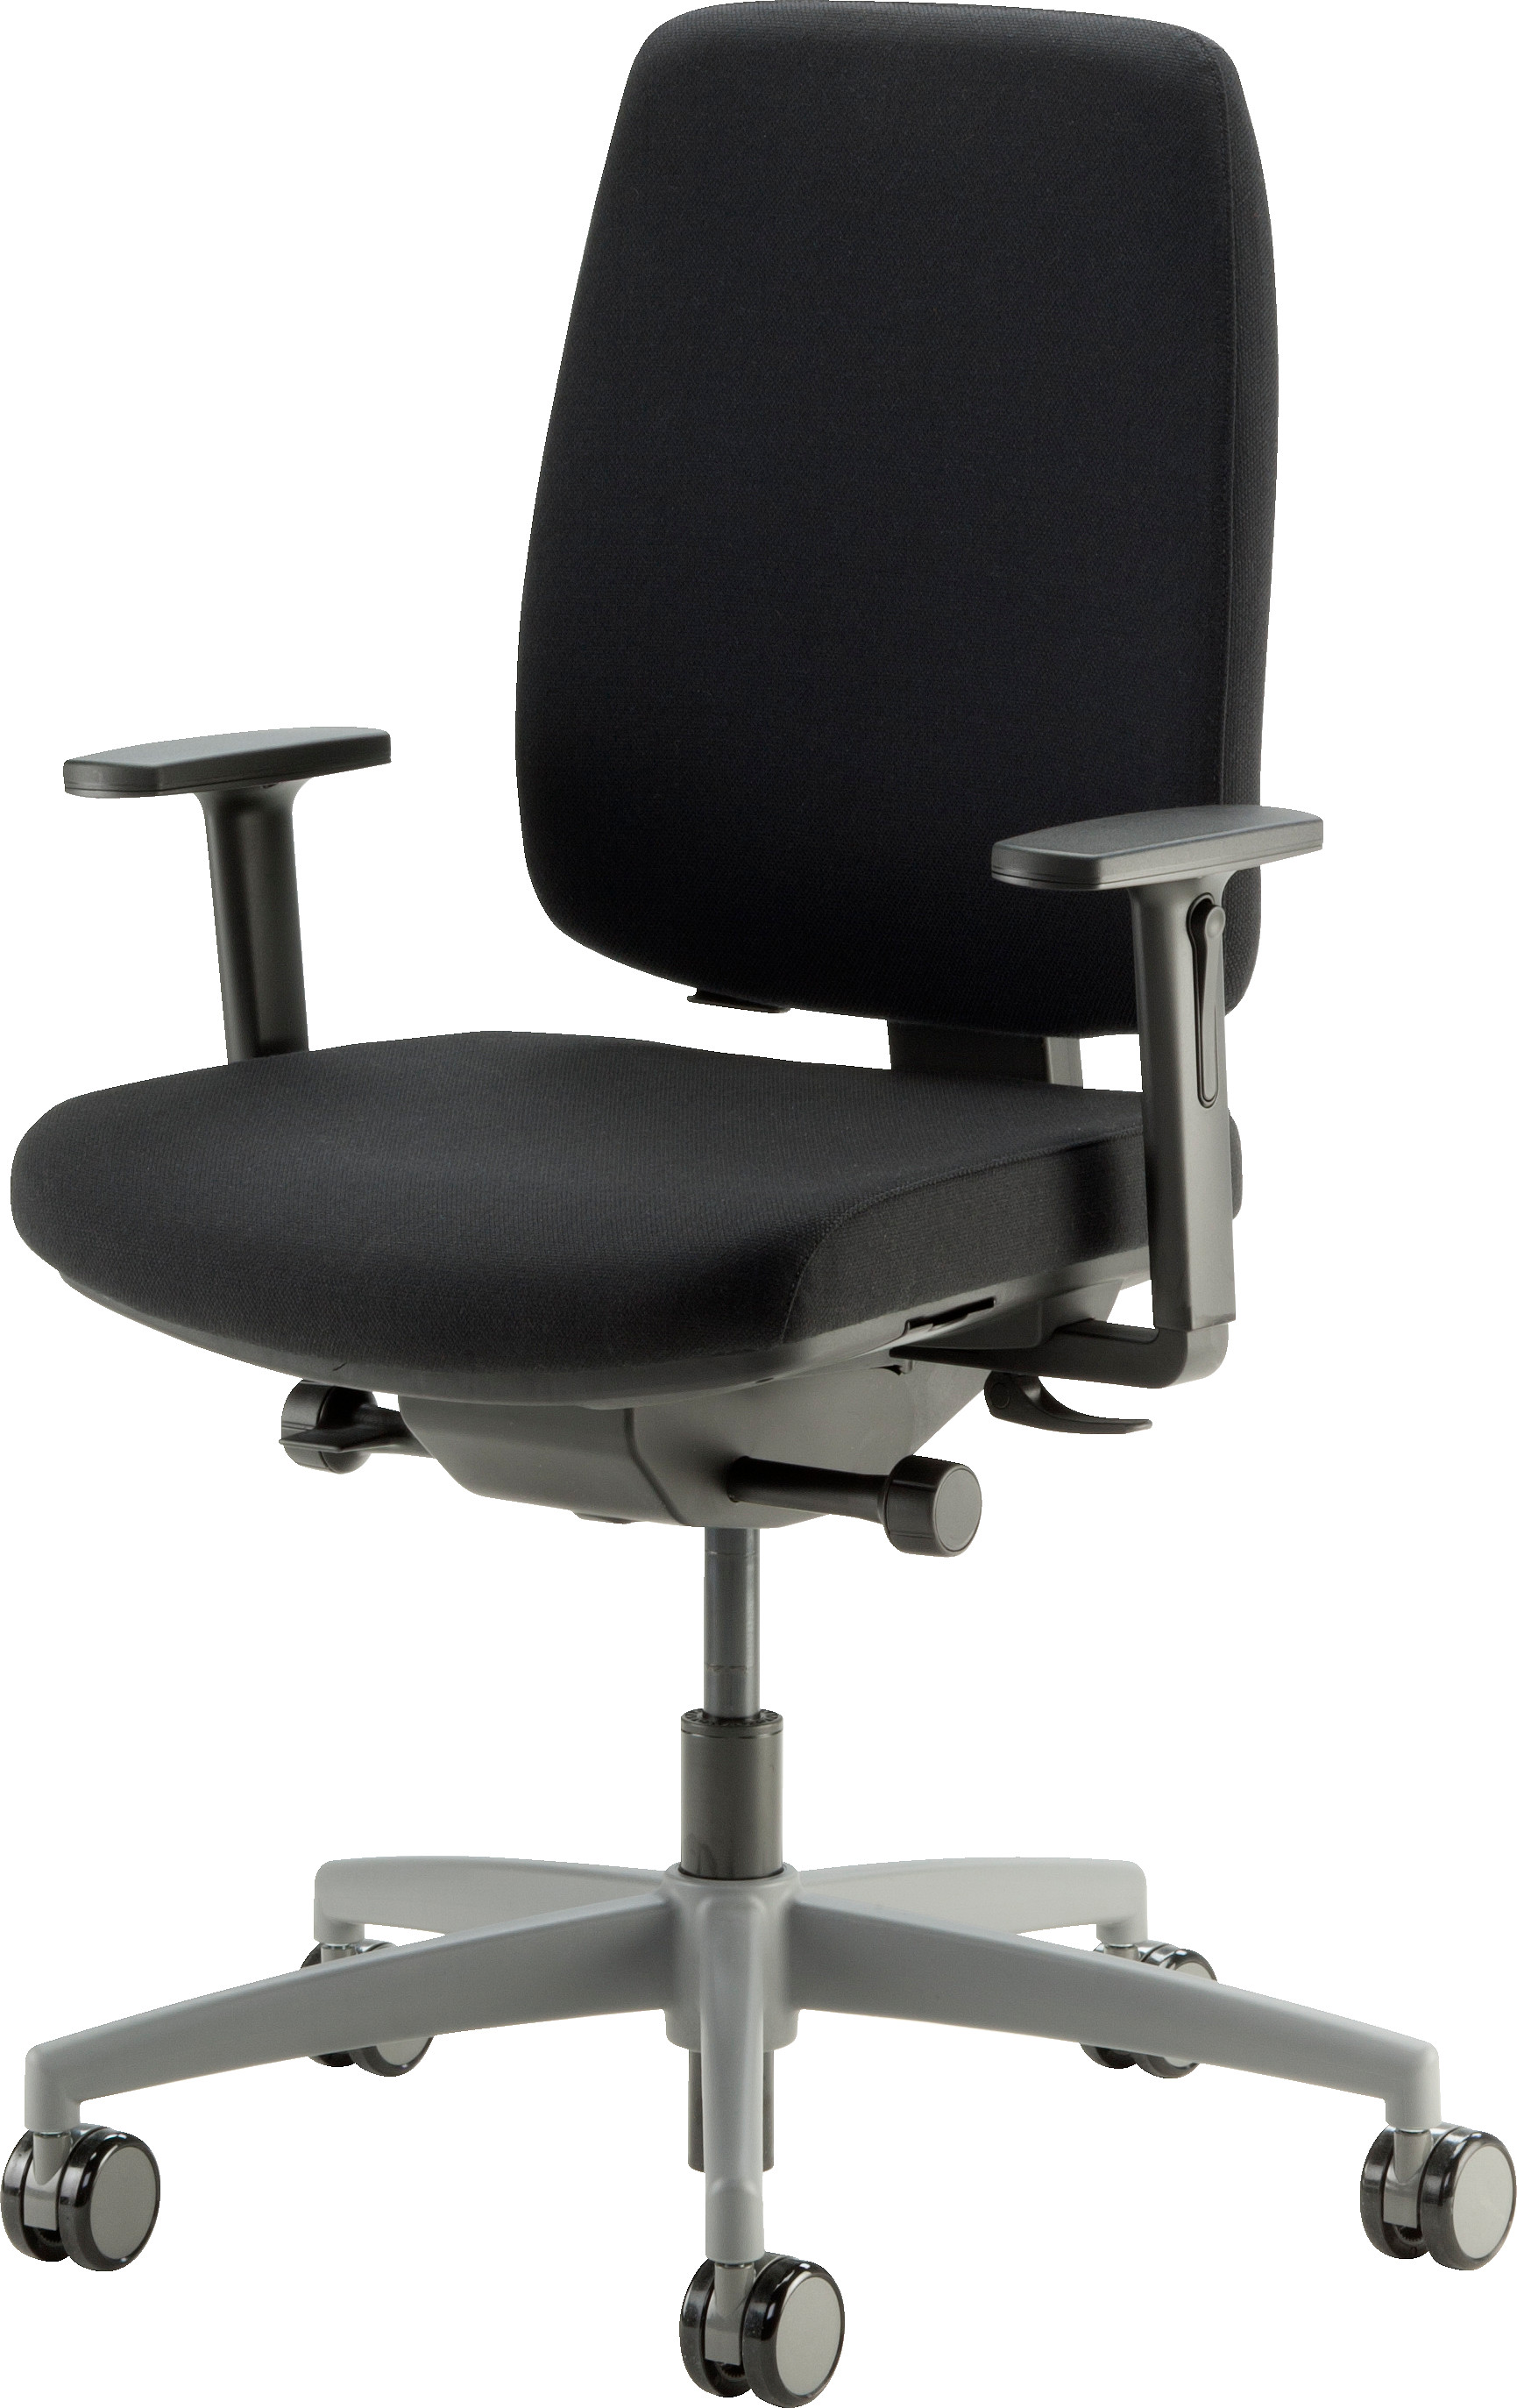 Work Chair Still Light Work Chair Isku